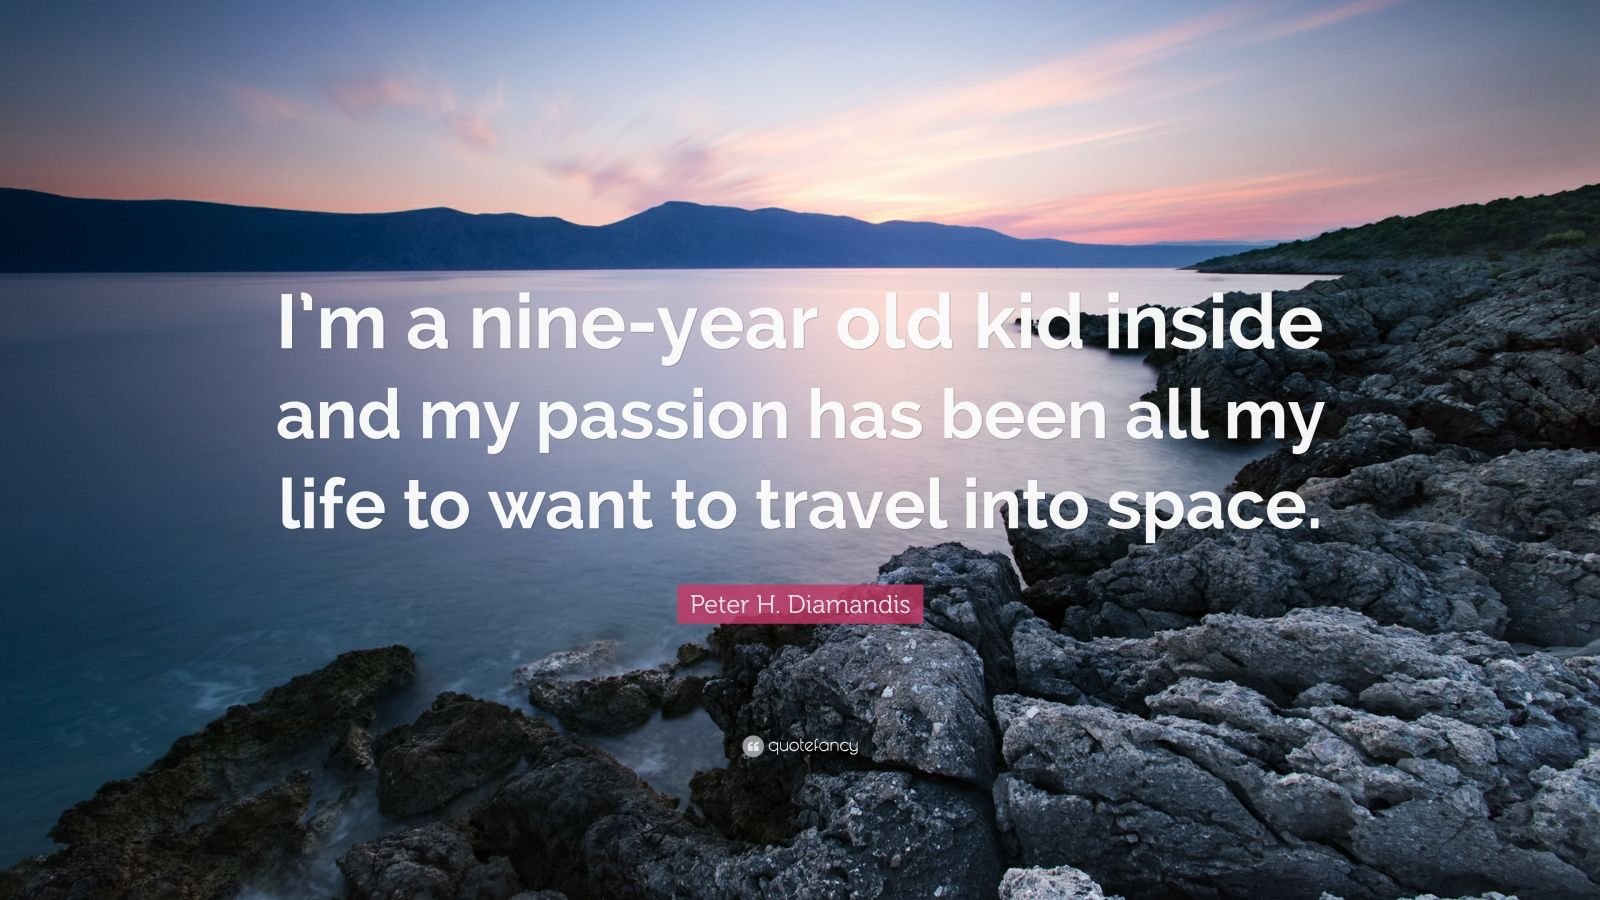 """Peter H. Diamandis Quote: """"I'm a nine-year old kid inside and my passion has been all my life to want to travel into space."""""""